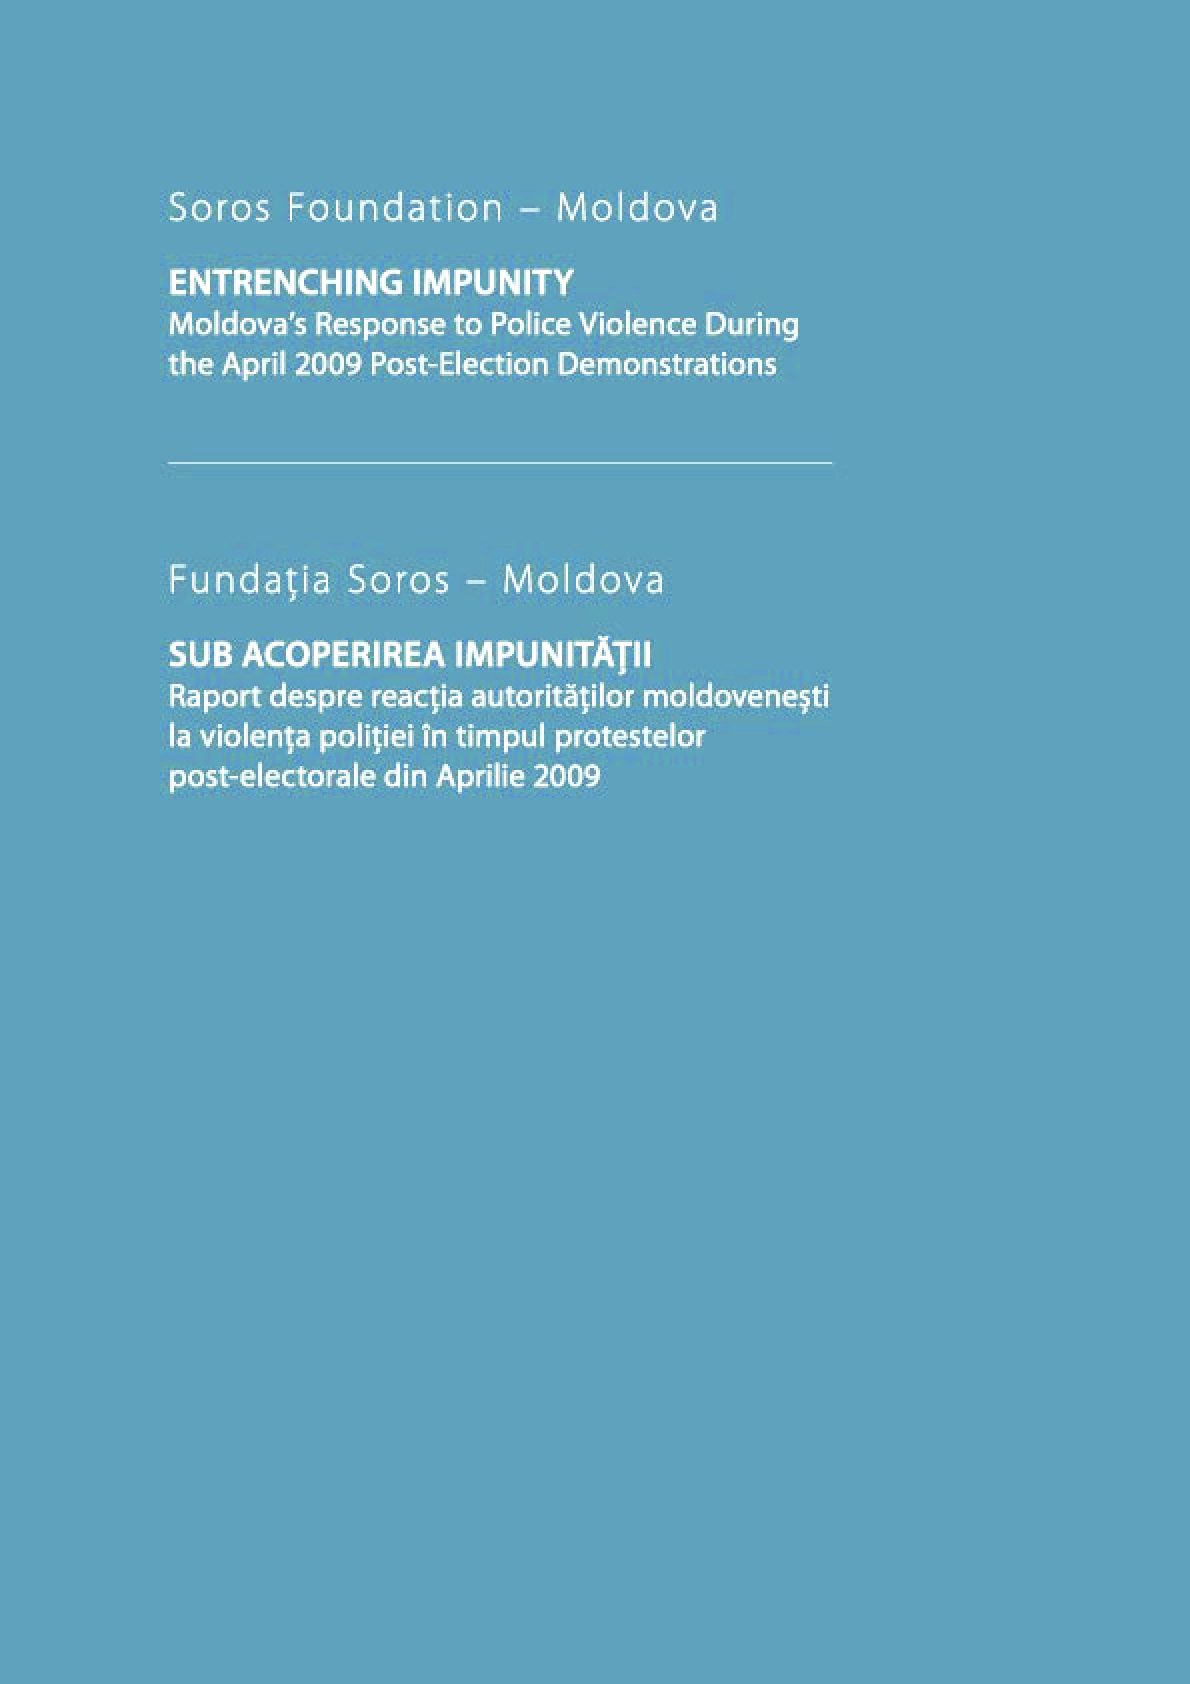 Entrenching Impunity: Moldova's Response to Police Violence During the April 2009 Post-Election Demonstrations